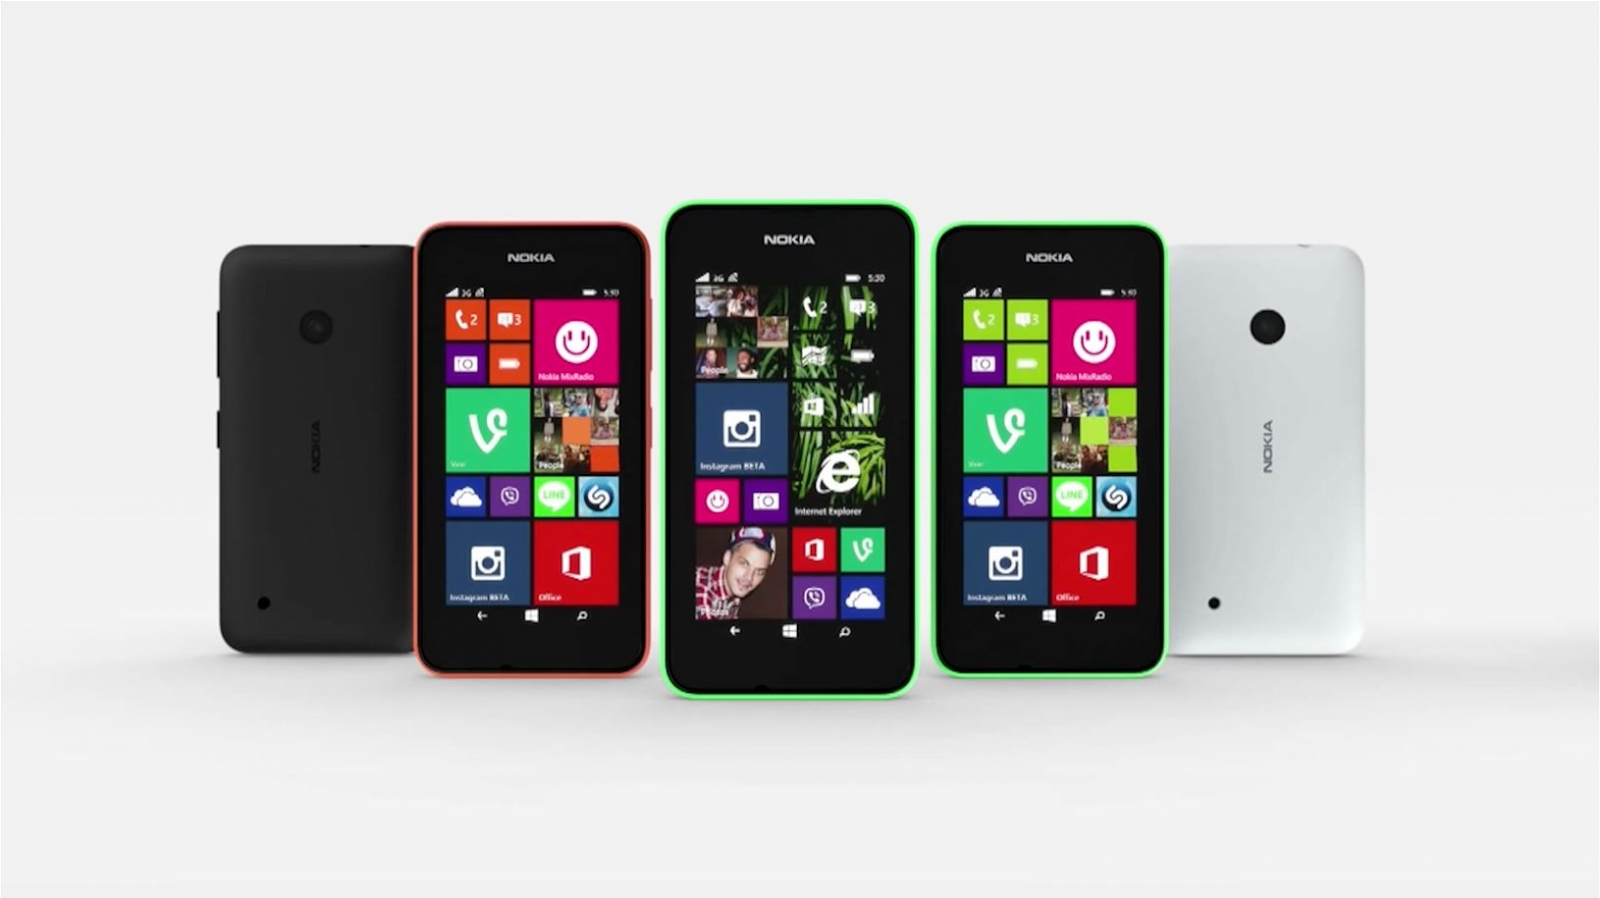 'Affordable' Nokia Lumia 530 Windows Phone 8.1 Smartphone now Hits UK: Available to Buy